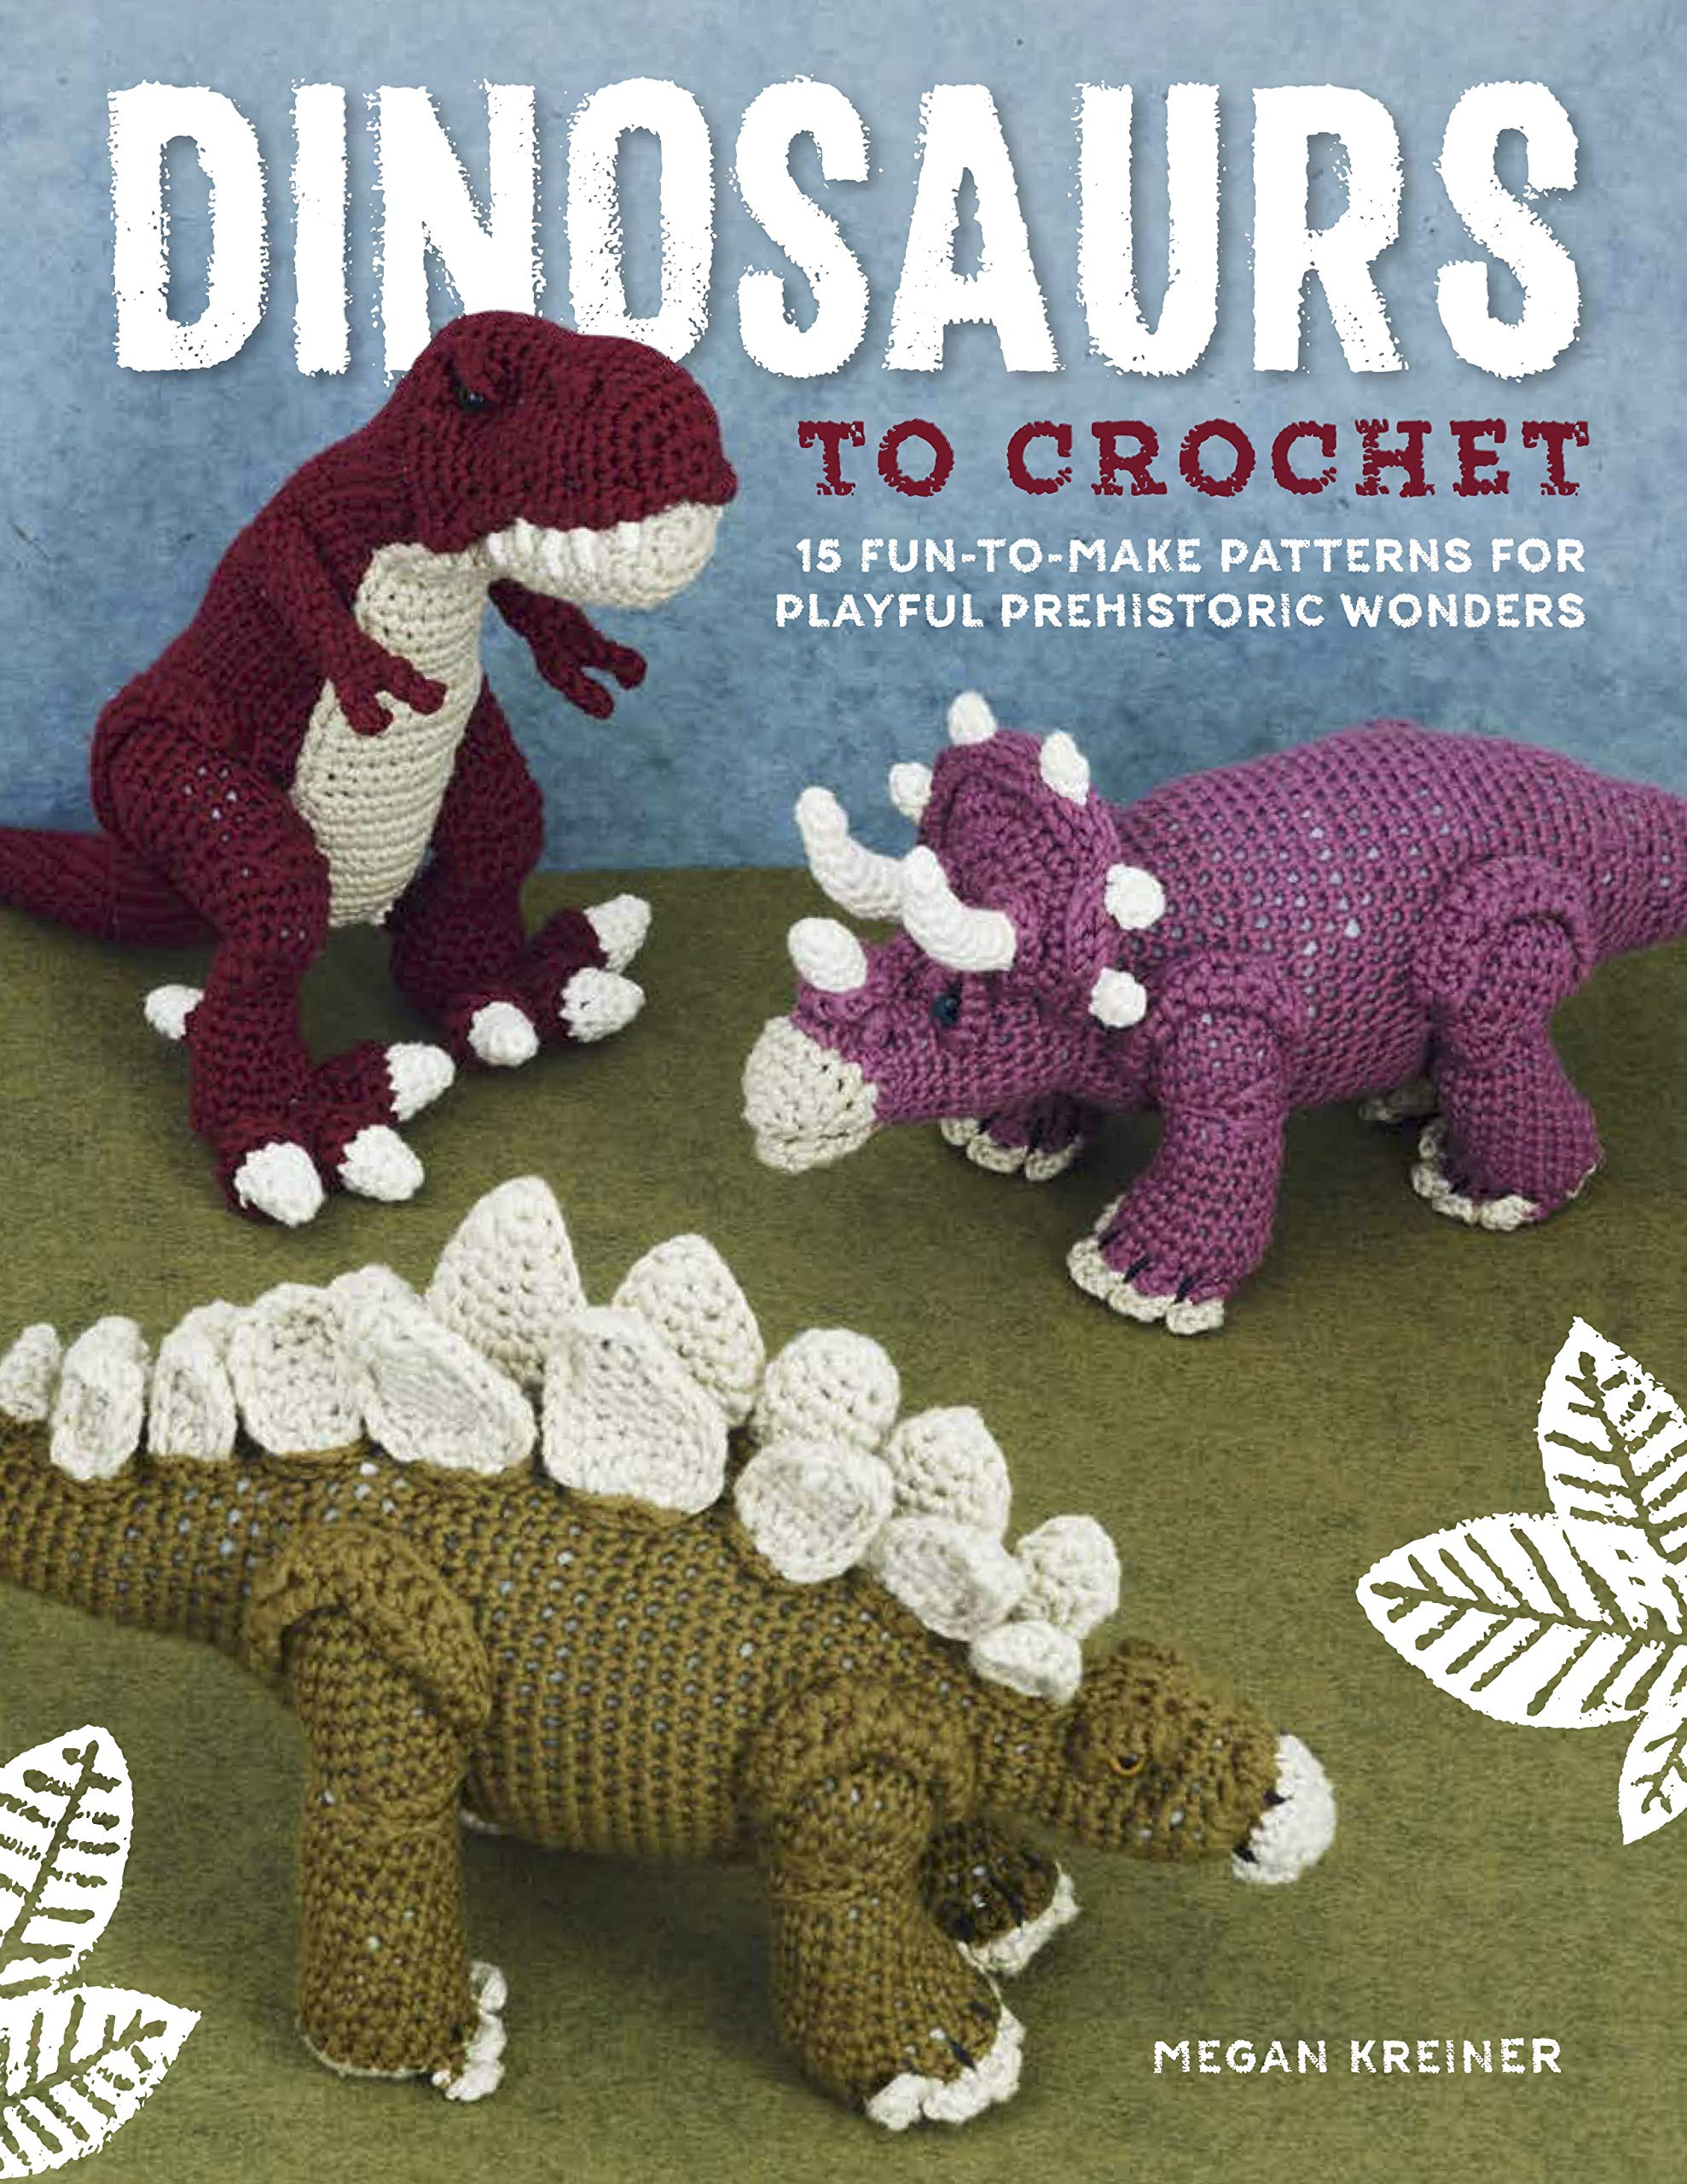 b4cfd2dd8d3c Dinosaurs to Crochet  15 Fun-to-Make Patterns for Playful ...